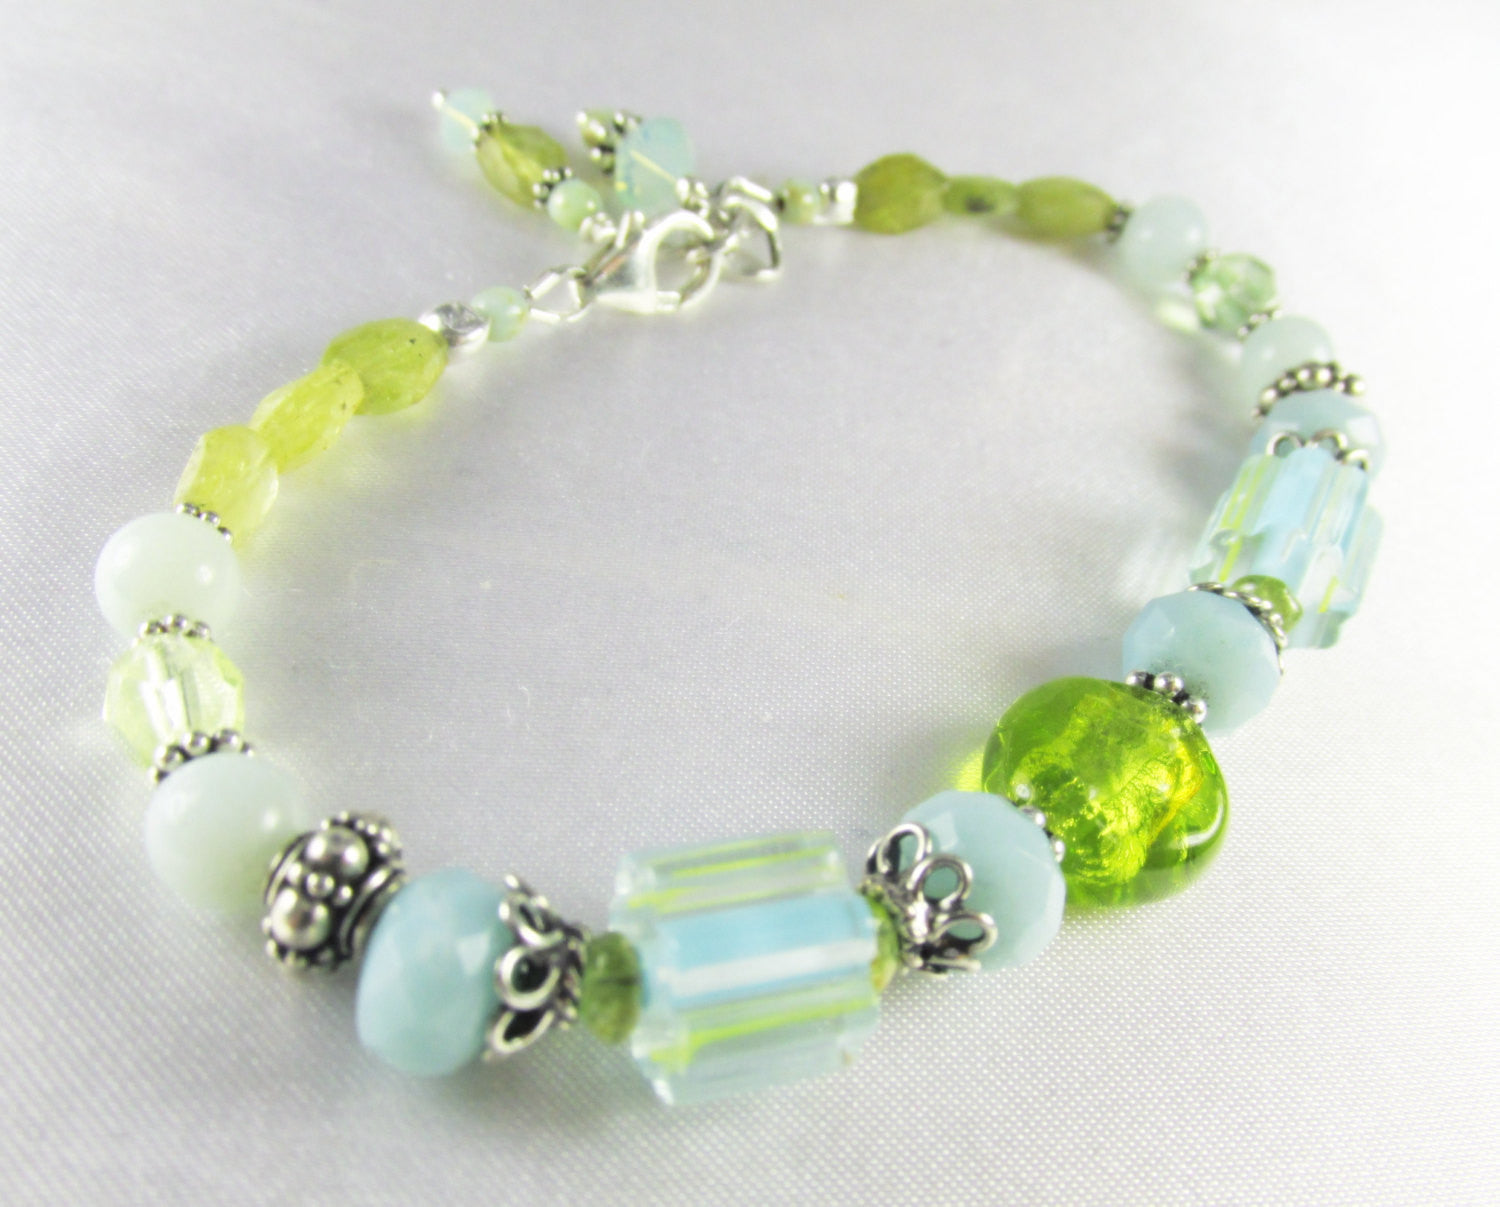 Aqua and Green Charm Bracelet with Amazonite & Peridot gemstones Murano and Cane Glass Lampwork beads and all sterling silver - Odyssey Creations